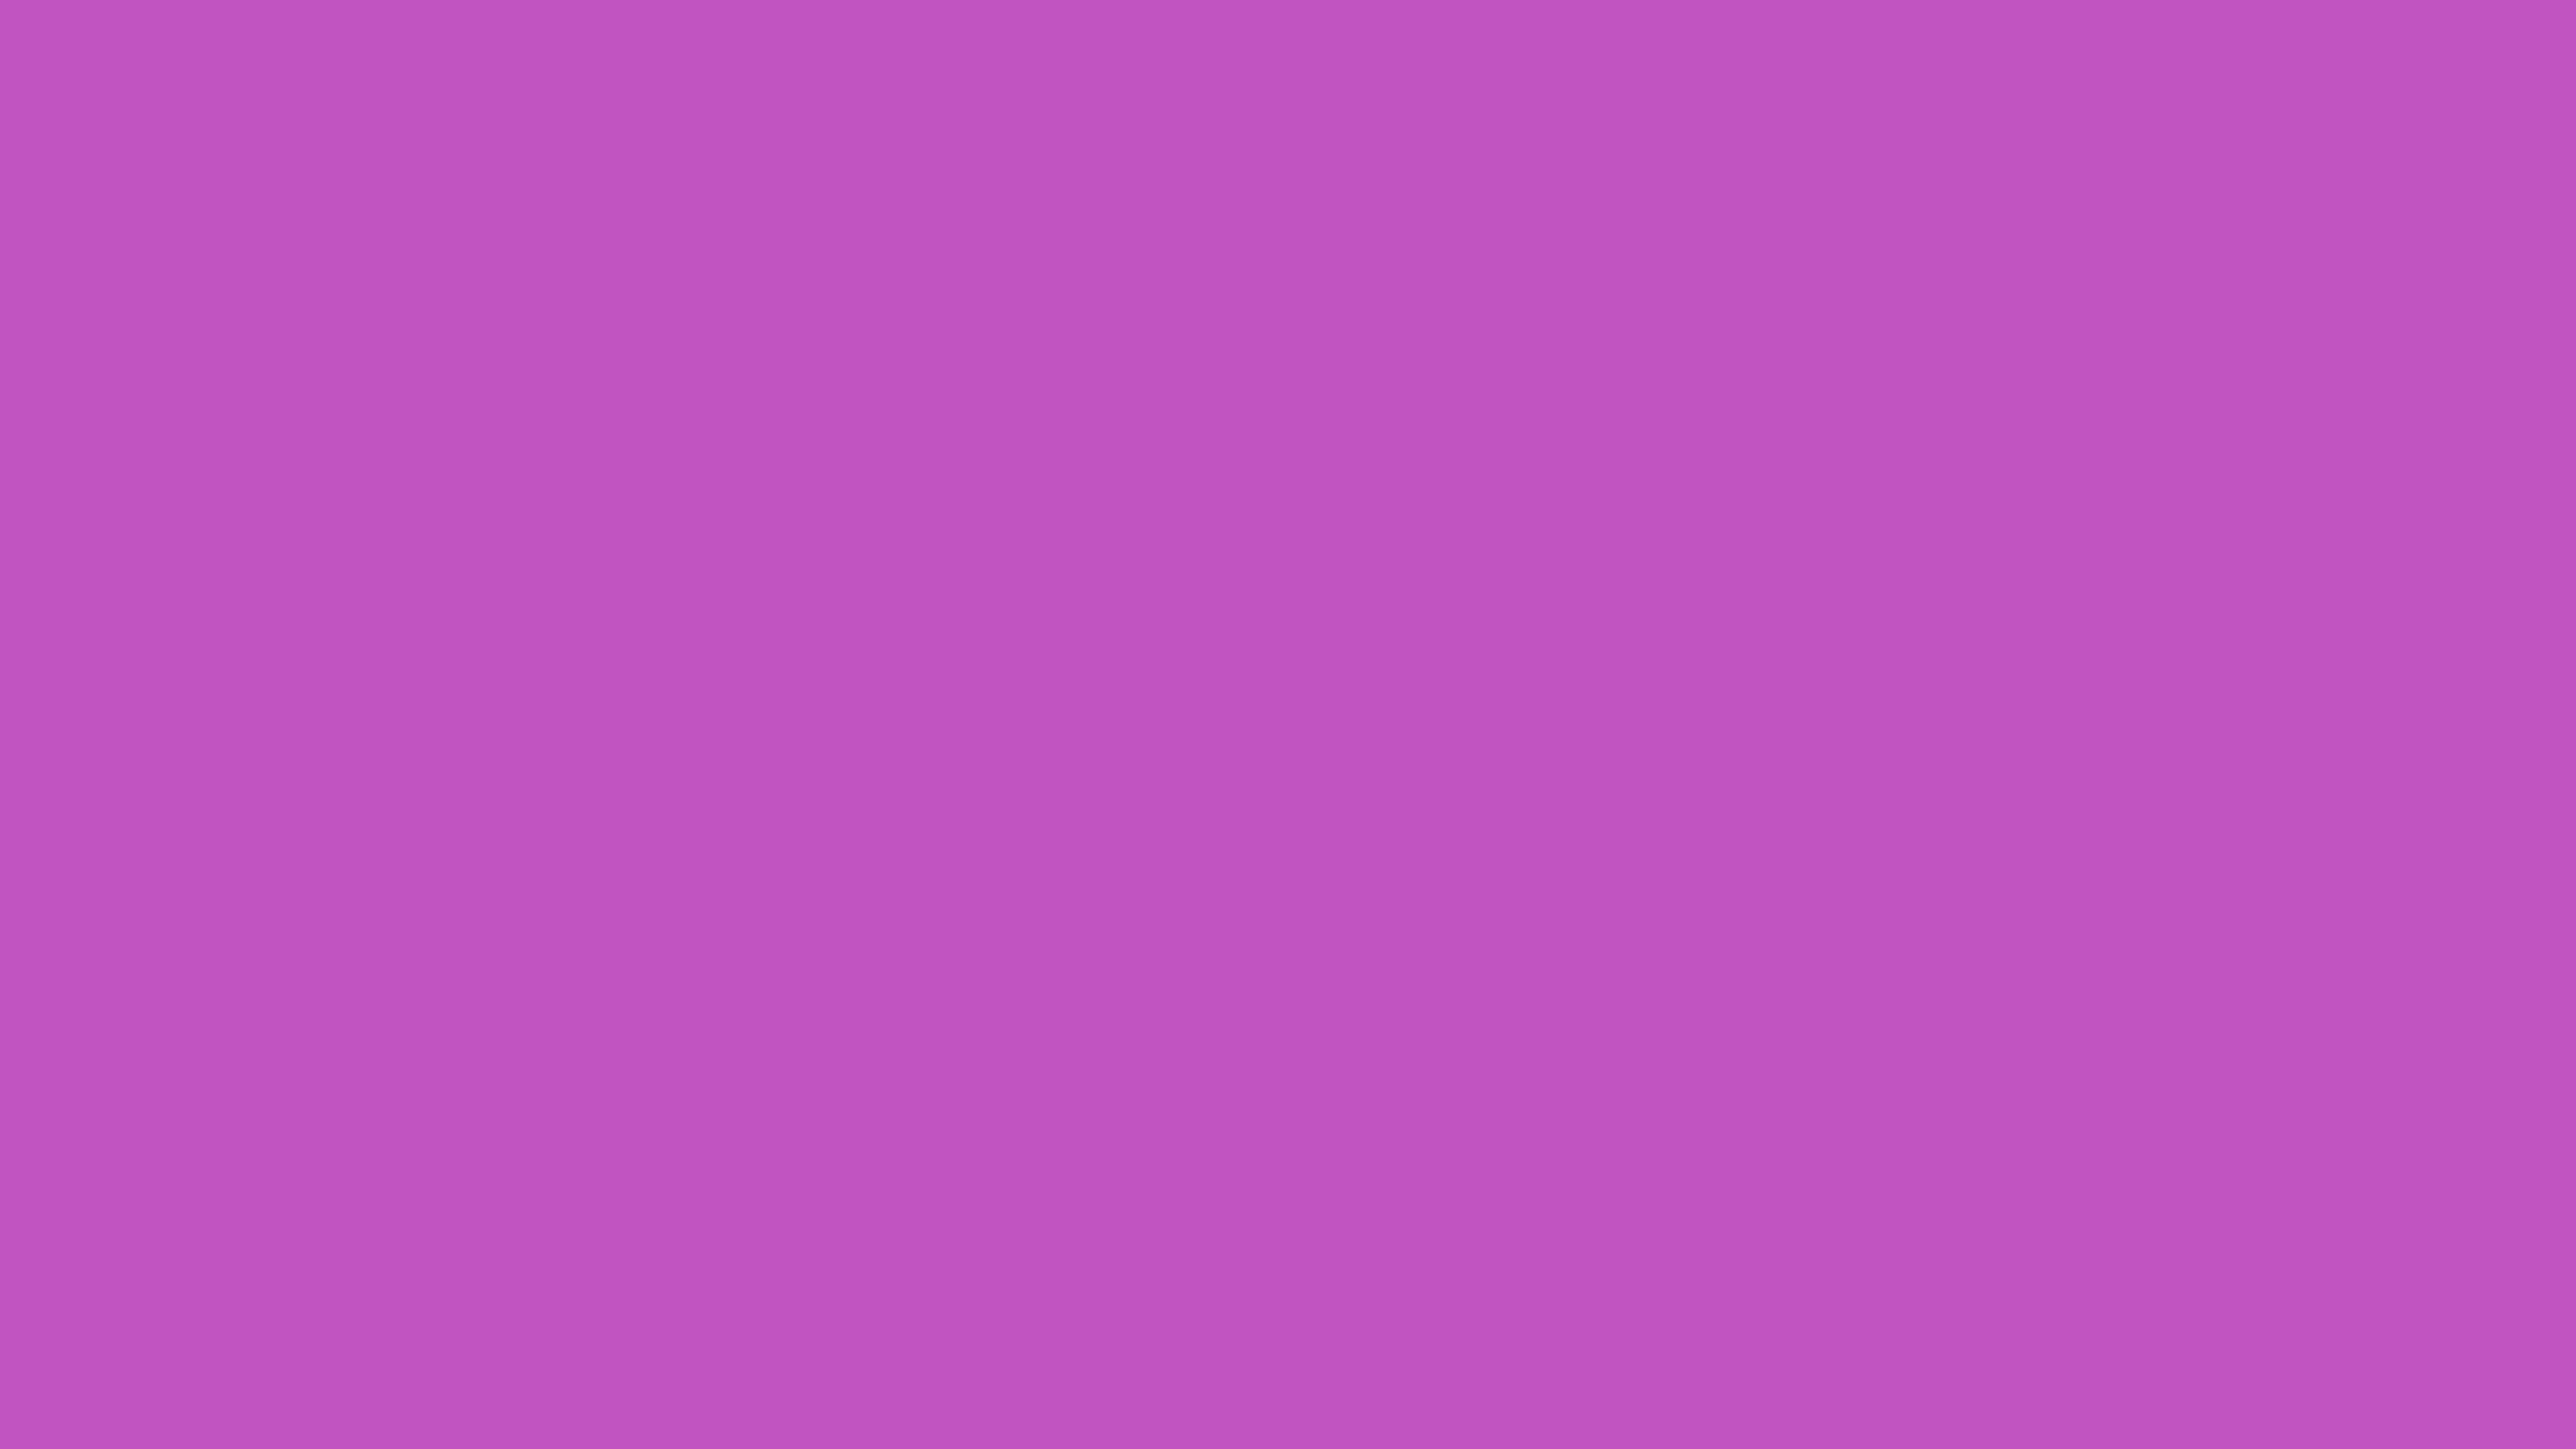 7680x4320 Fuchsia Crayola Solid Color Background